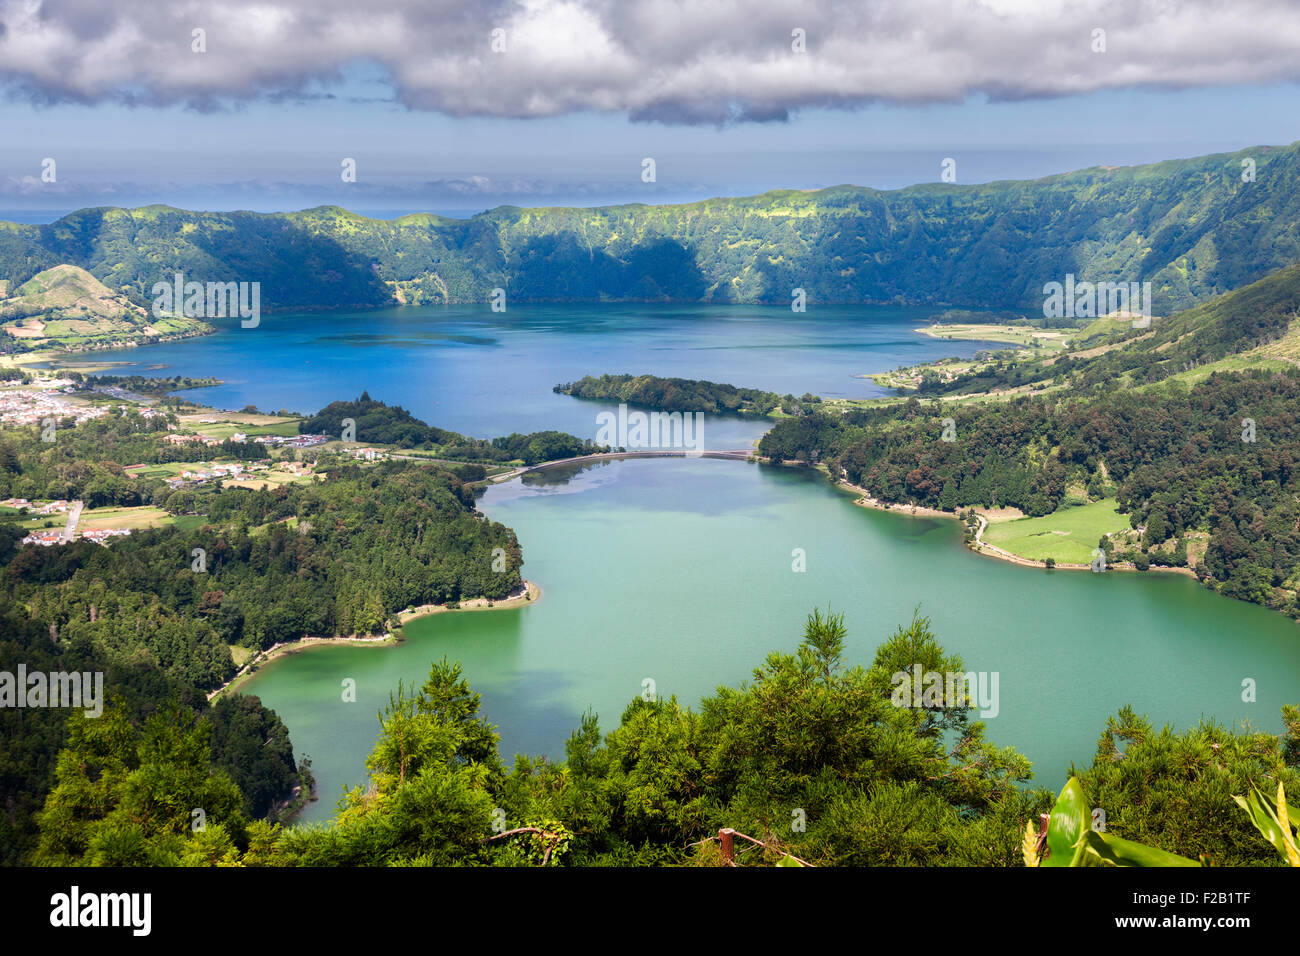 Lake of Sete Cidades from Vista do Rei viewpoint in Sao Miguel, Azores - Stock Image